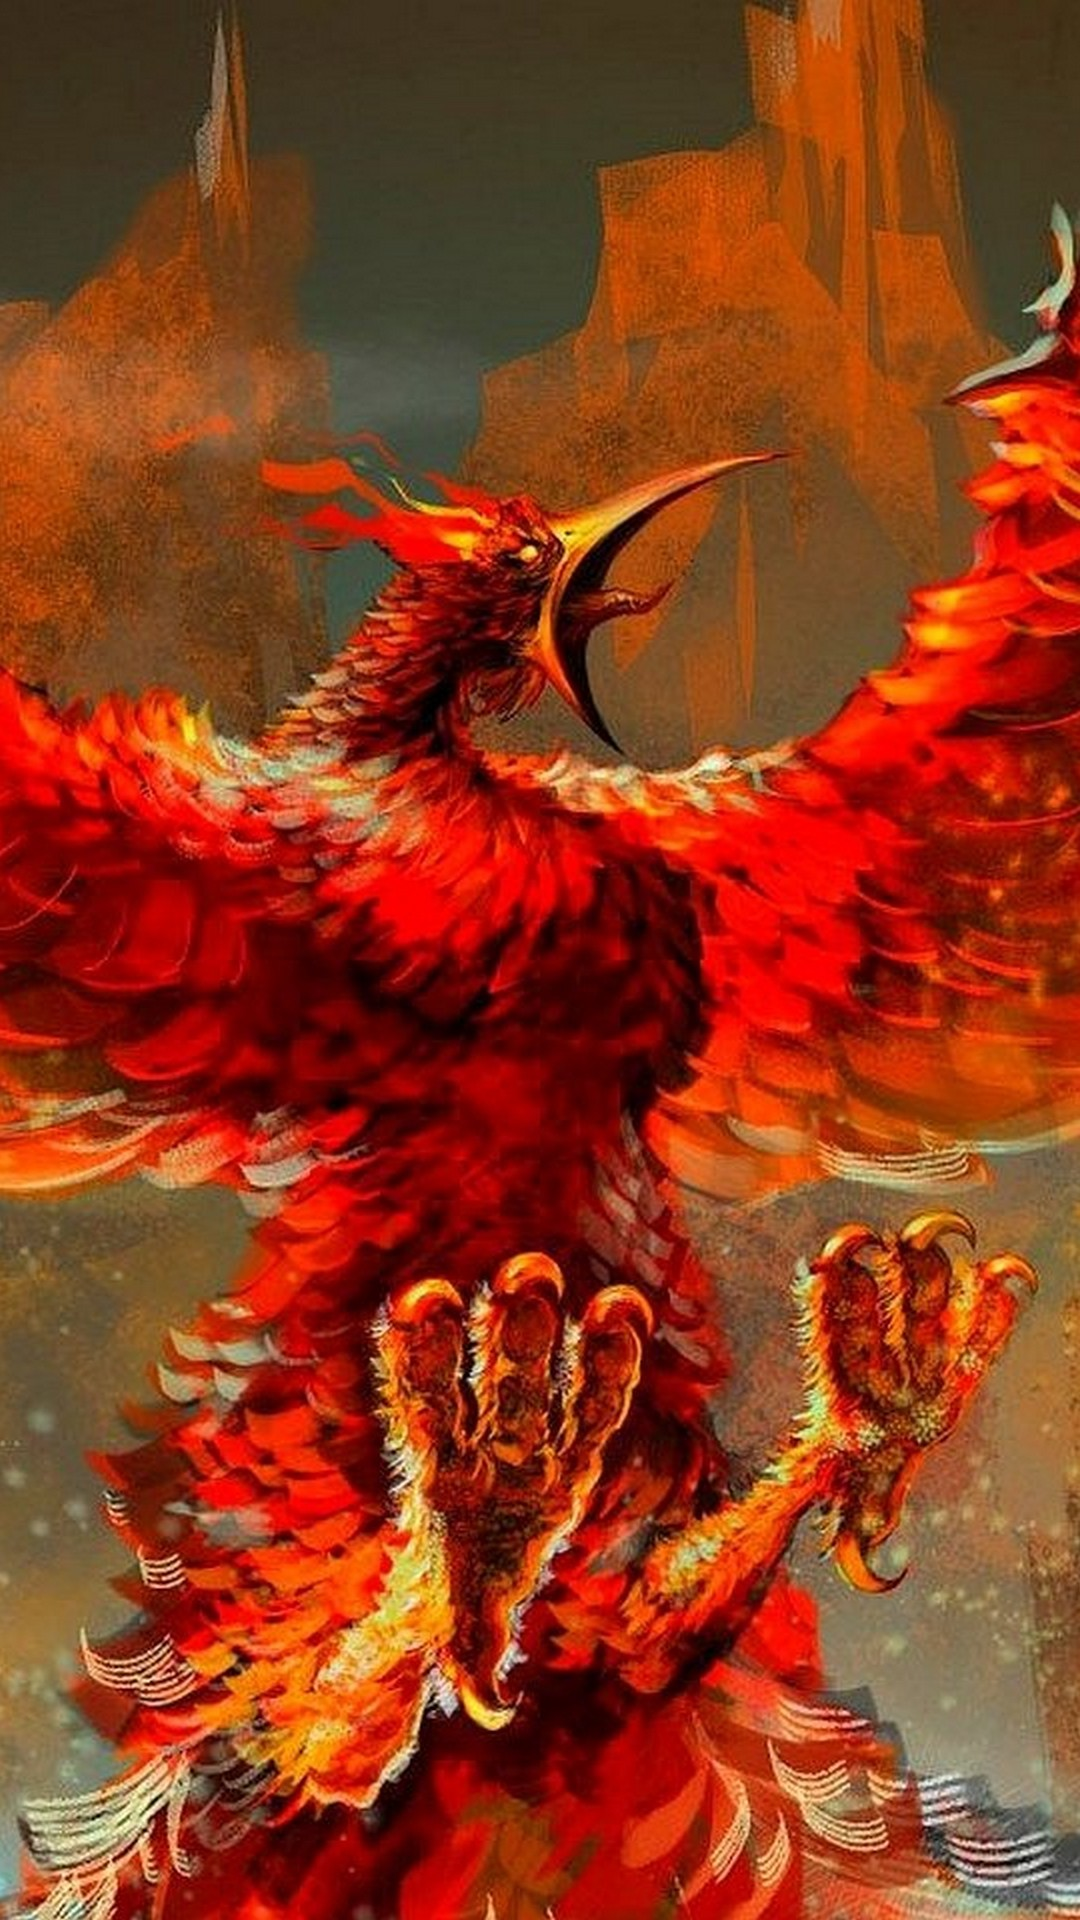 Red Angry Phoenix